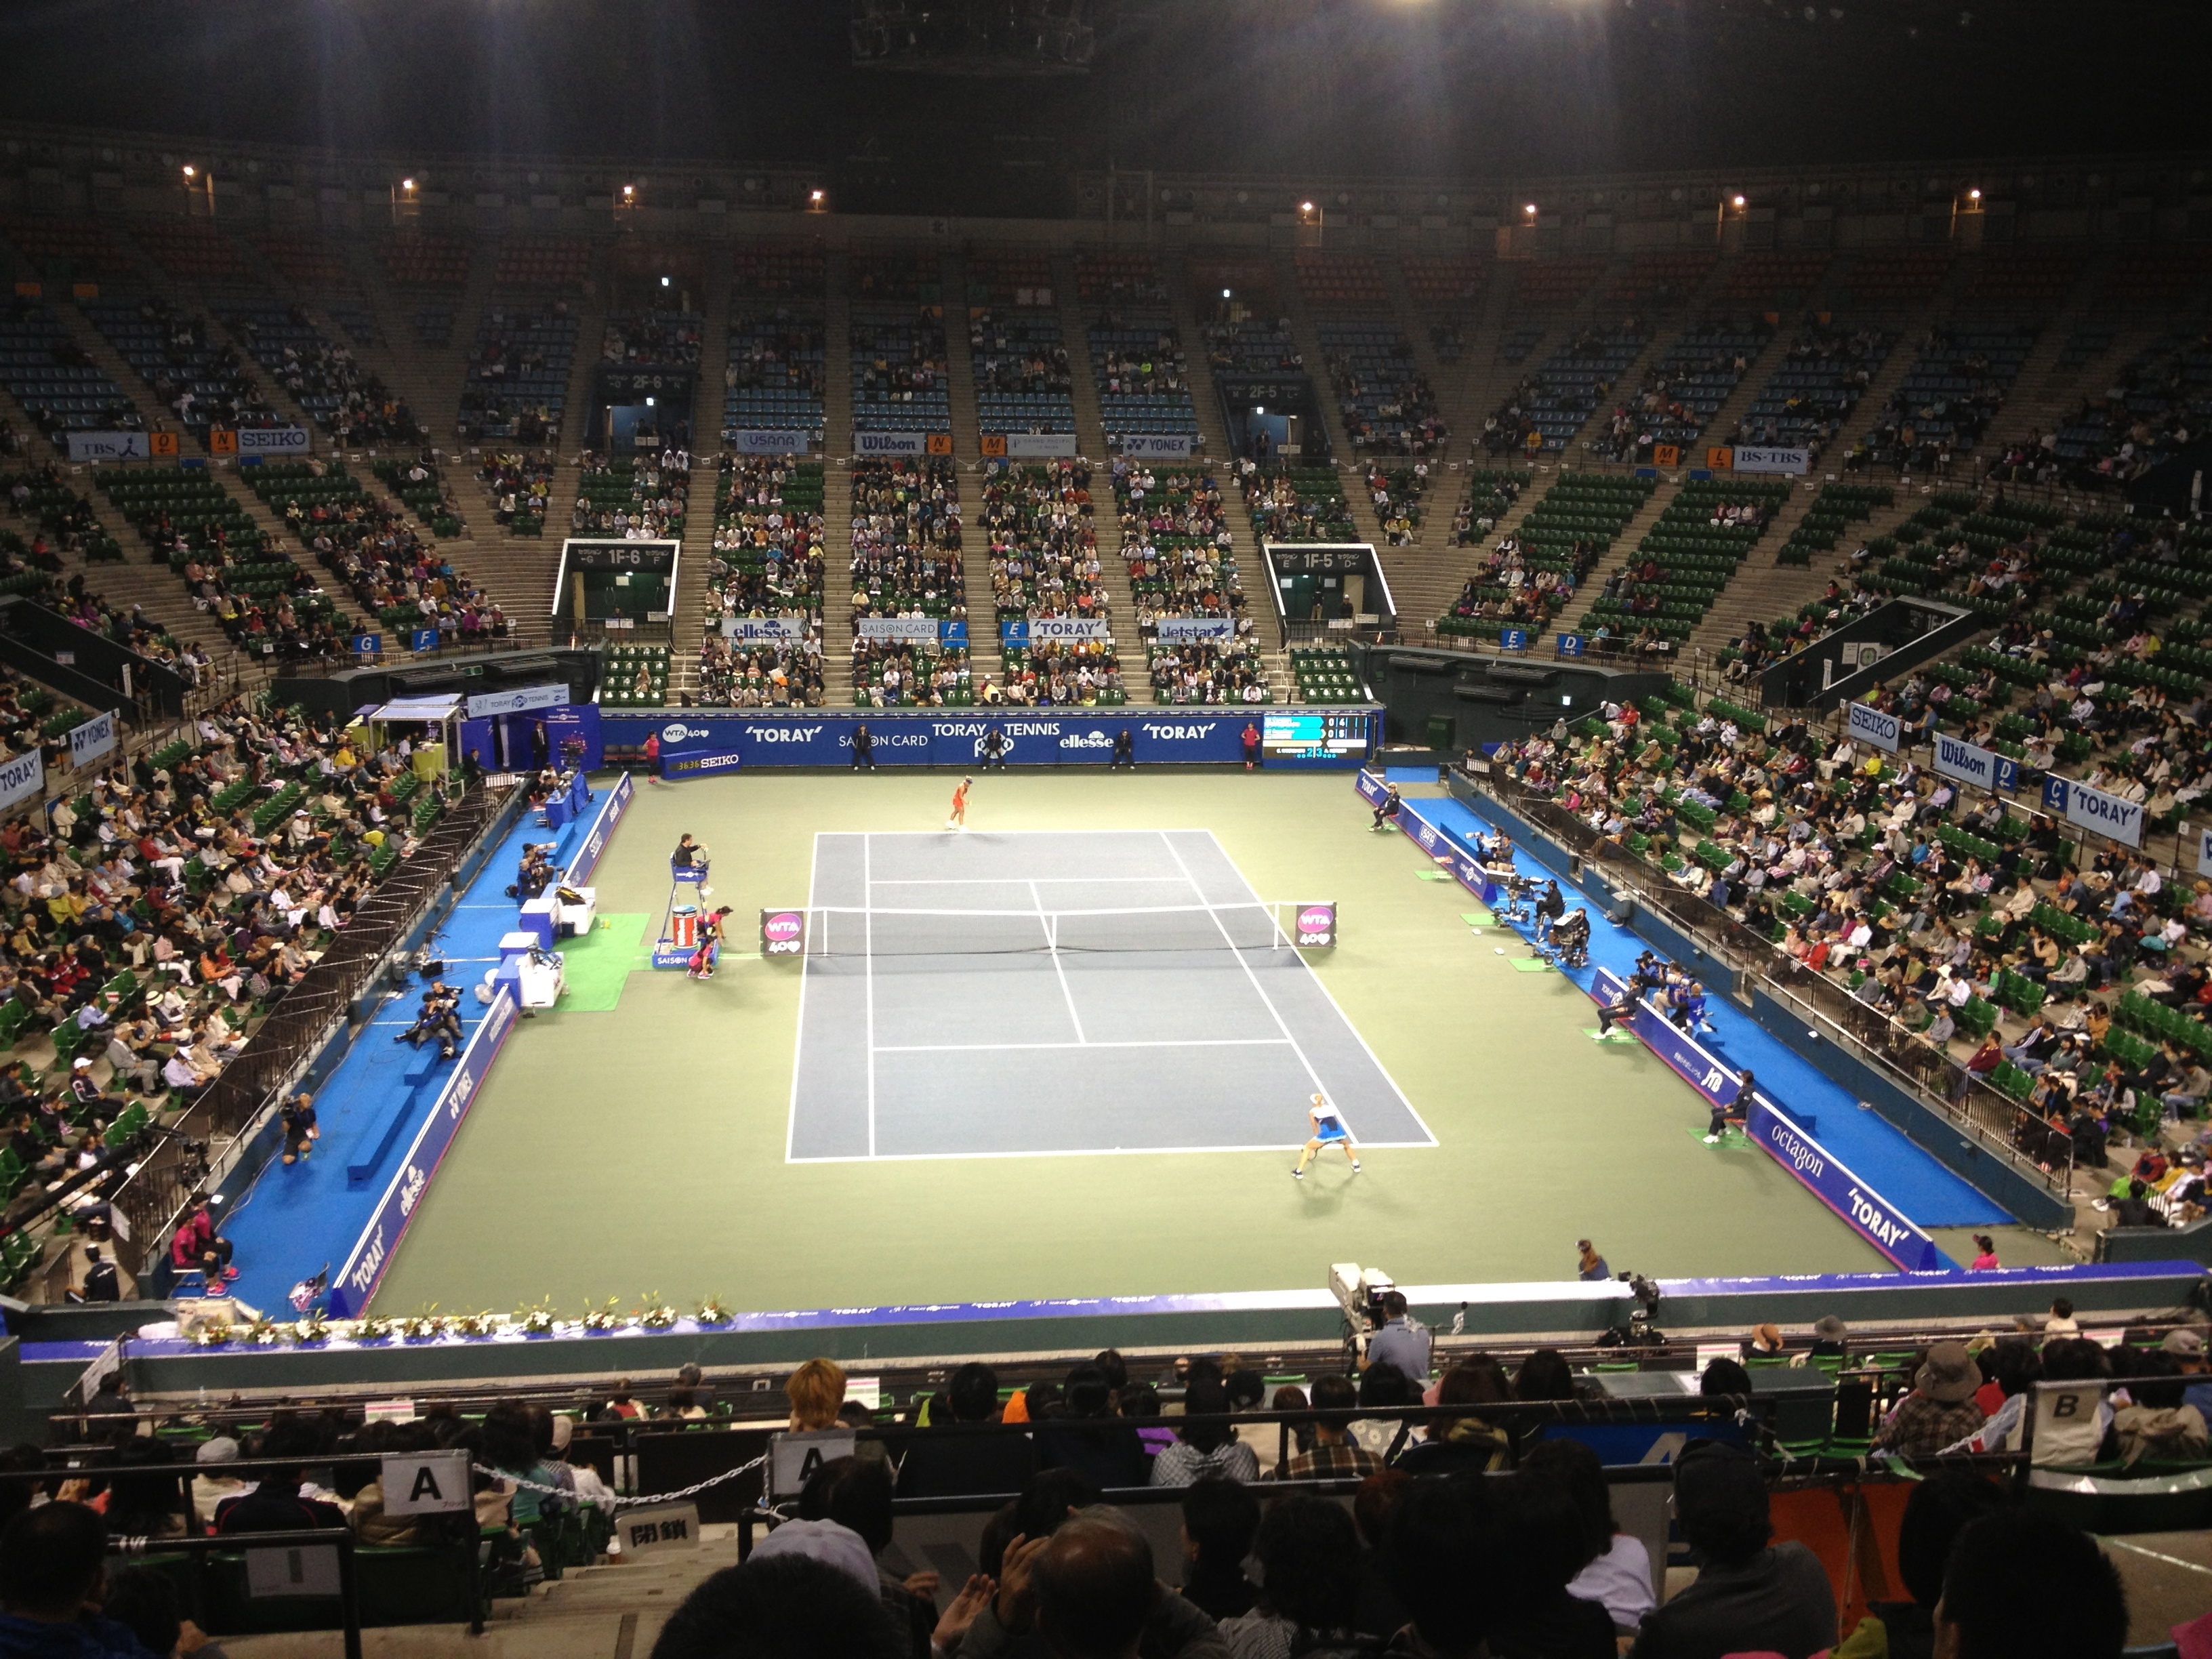 tokyo toray pan pacific open 2013 tennis tournament. Black Bedroom Furniture Sets. Home Design Ideas